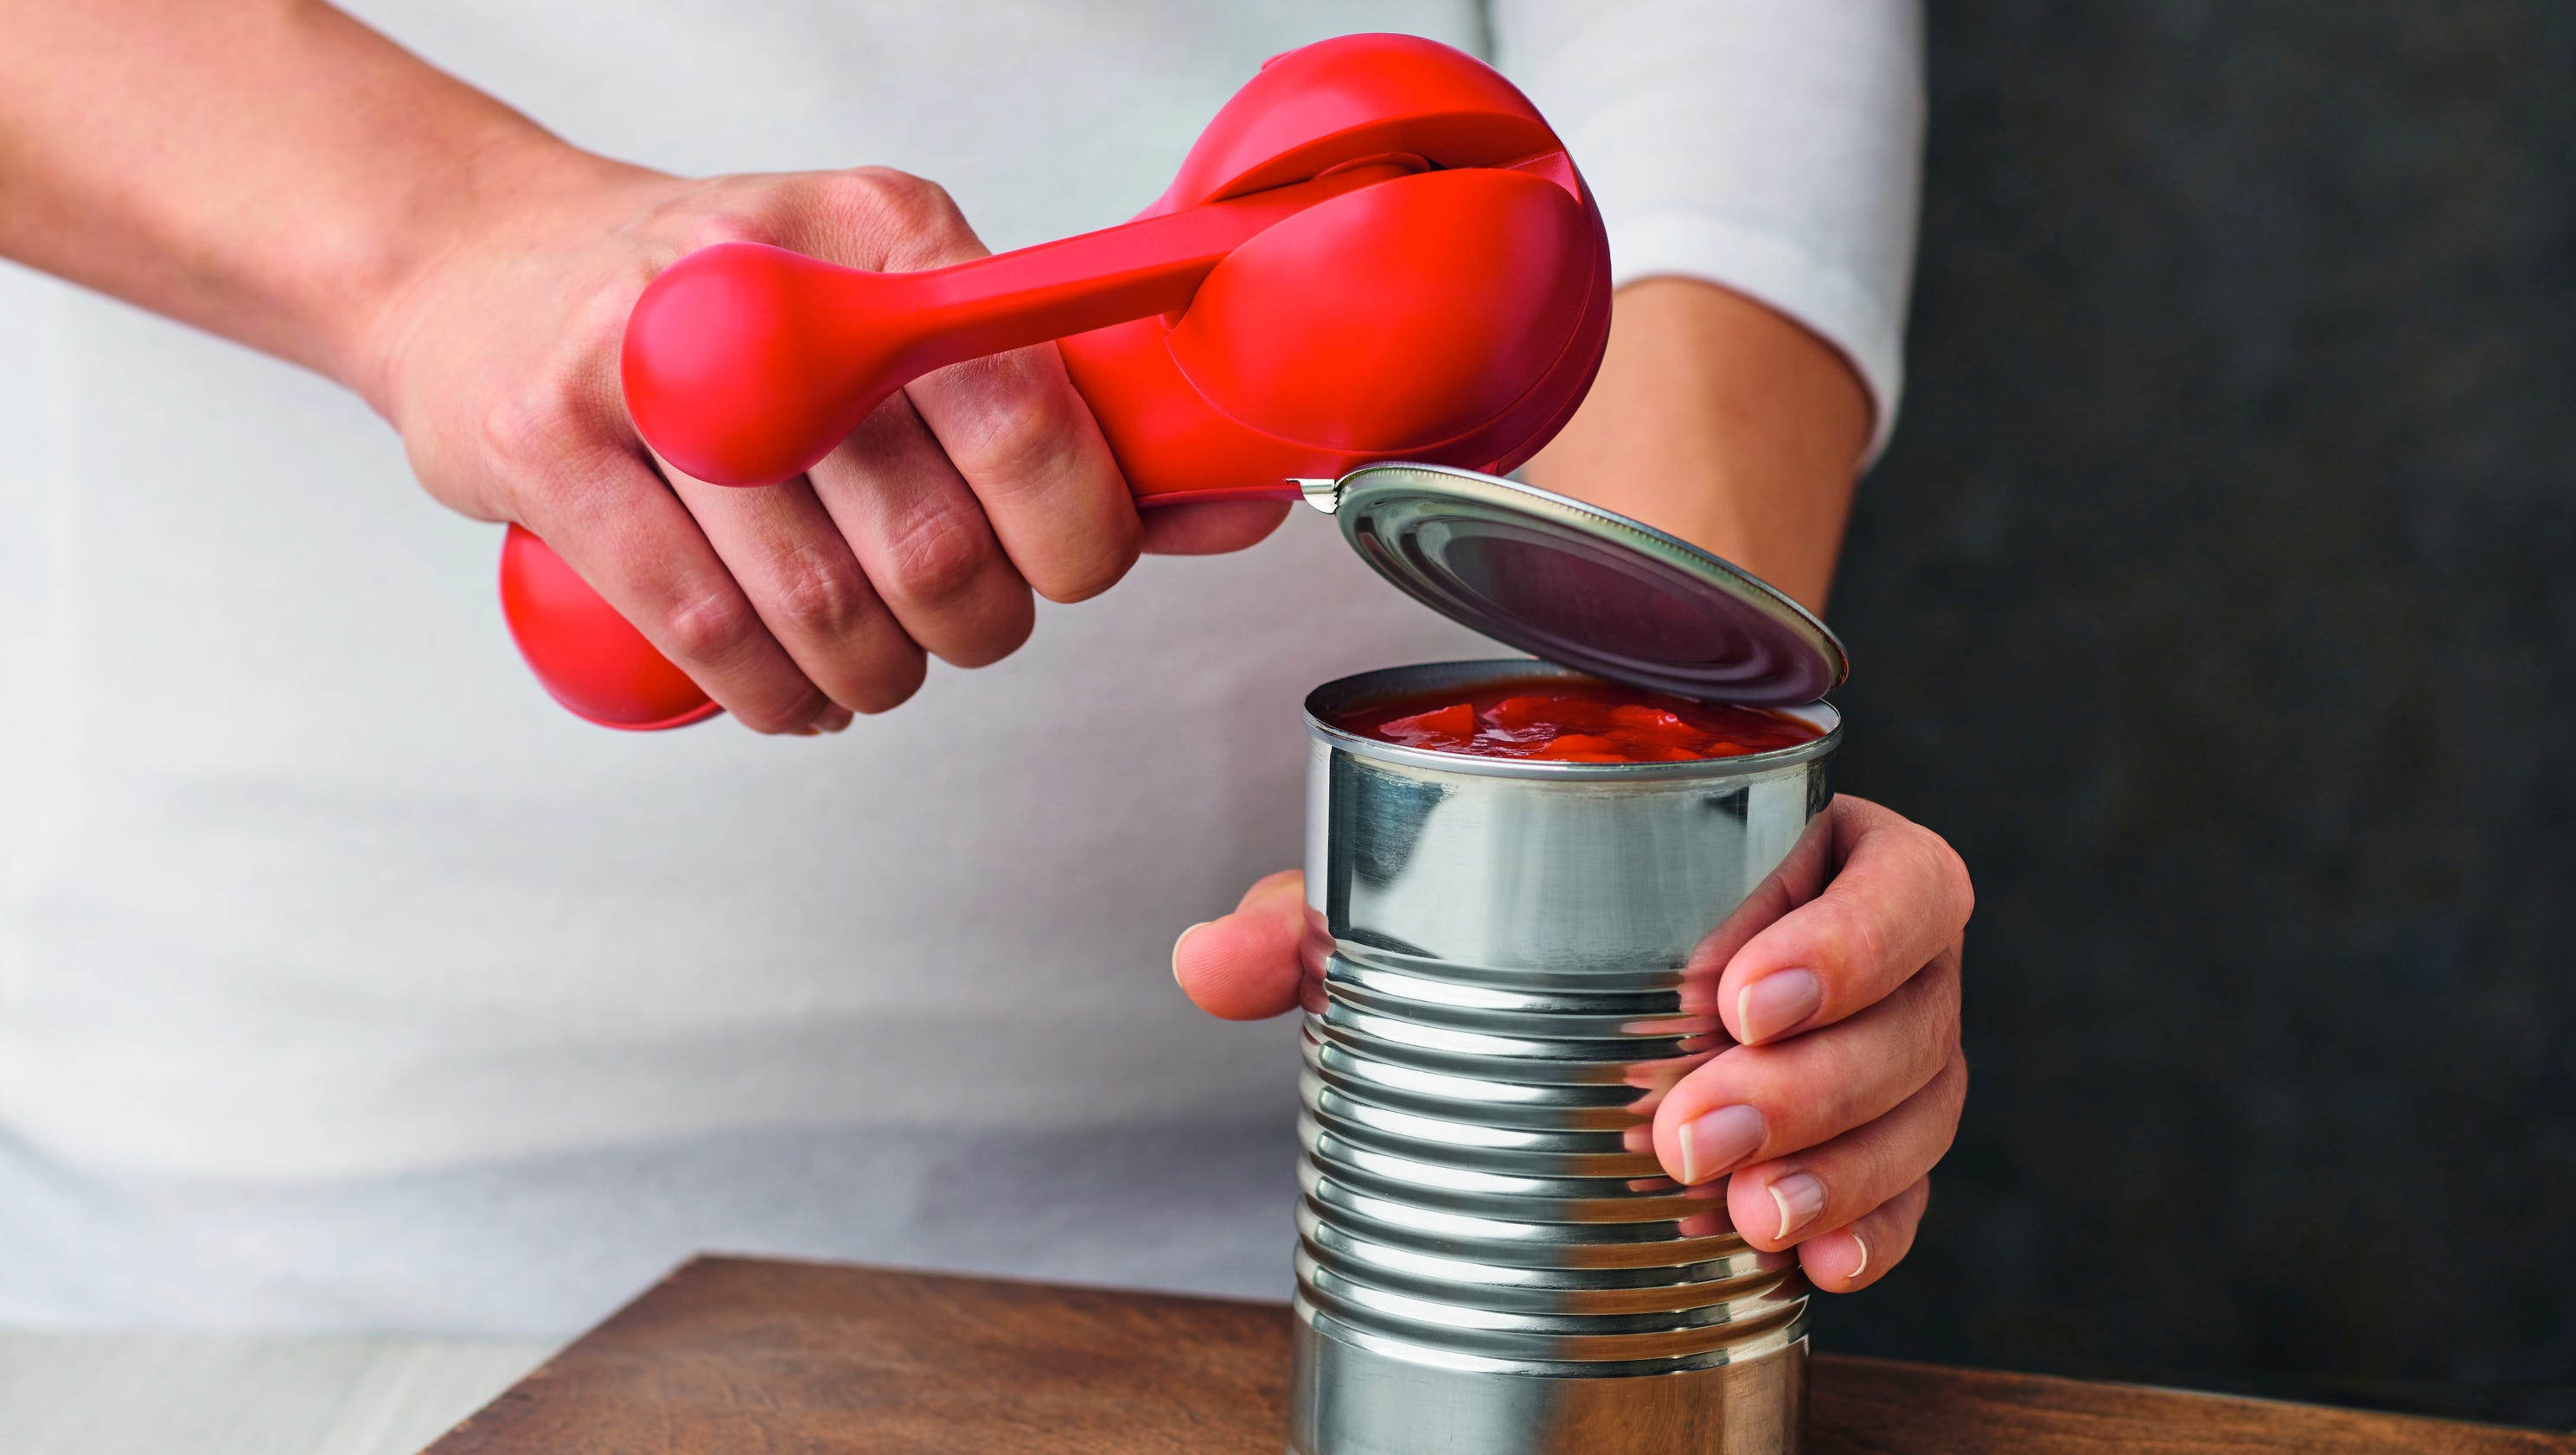 Robin 39 s rescue 8 top gadgets to make dinner fast easy for Easy things to make for dinner for two